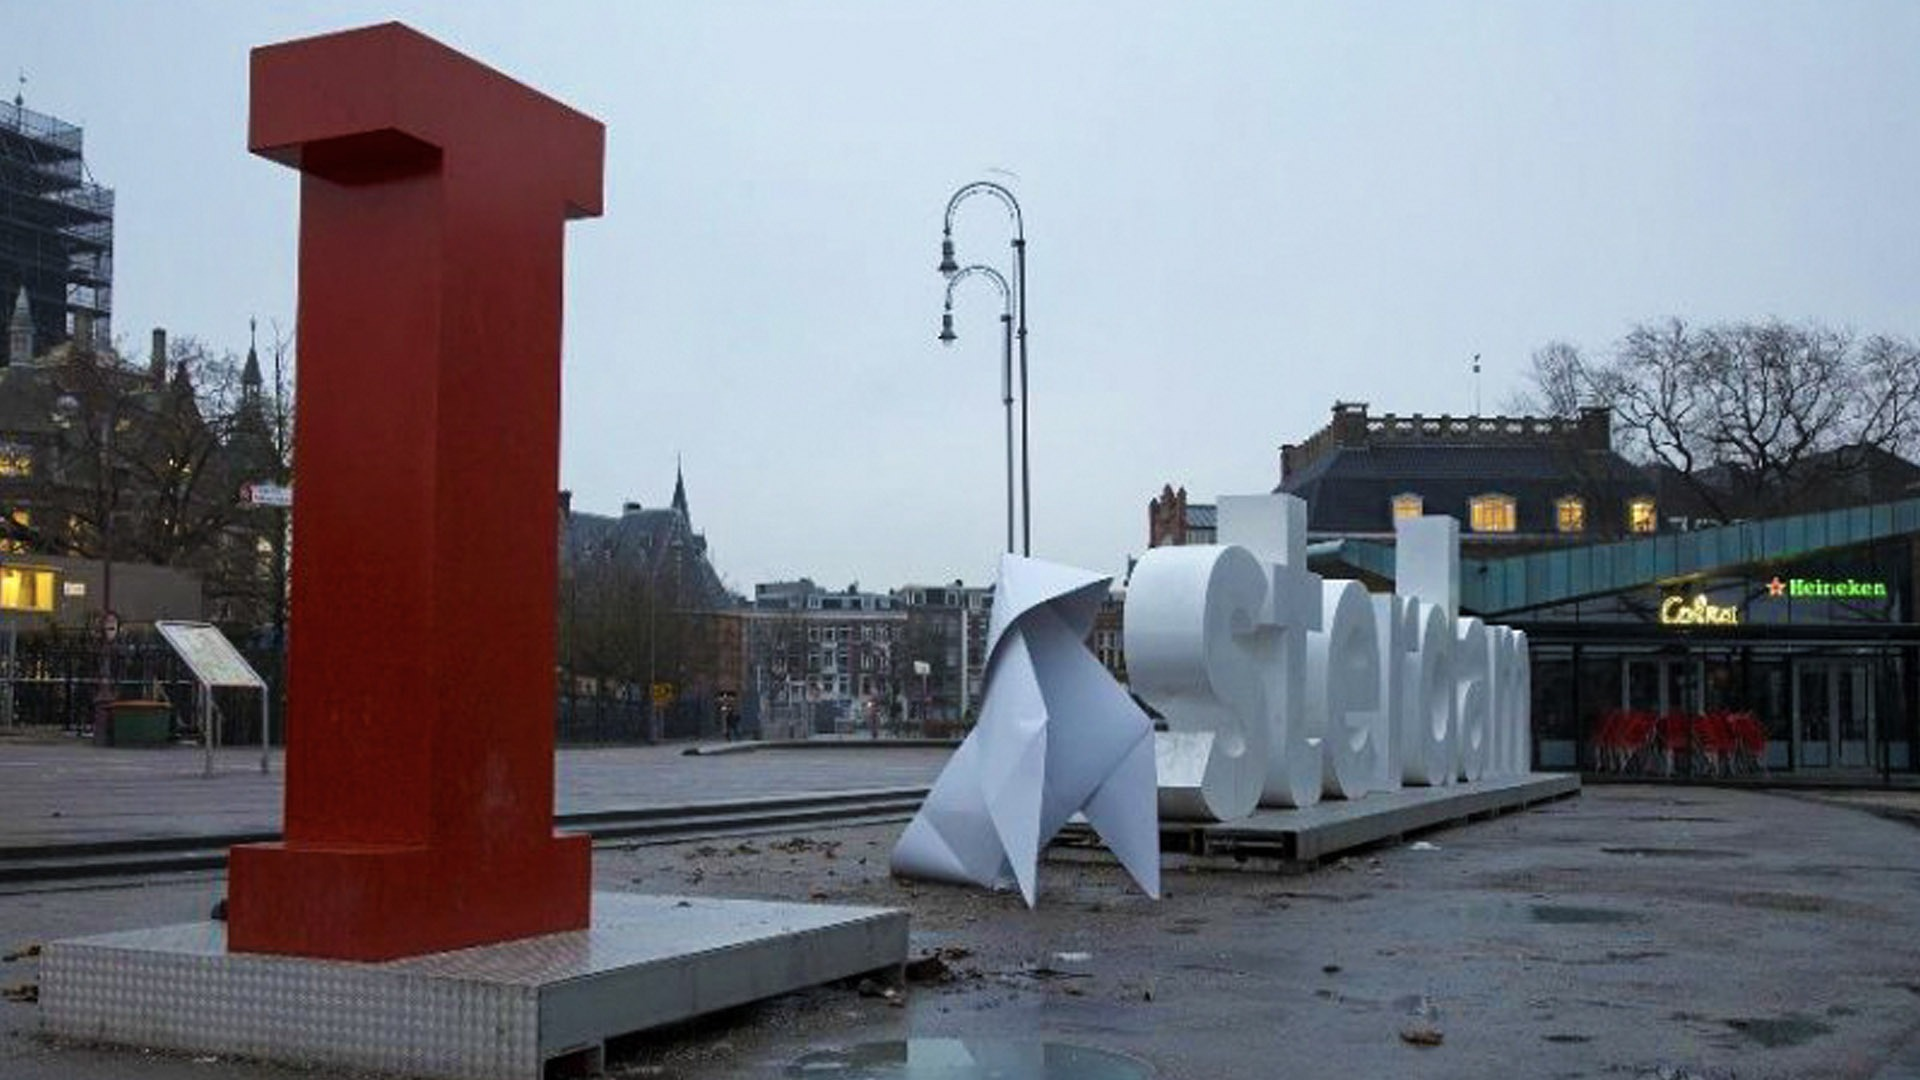 Playstation-Origami-I-Amsterdam-PR-marketing-stunt